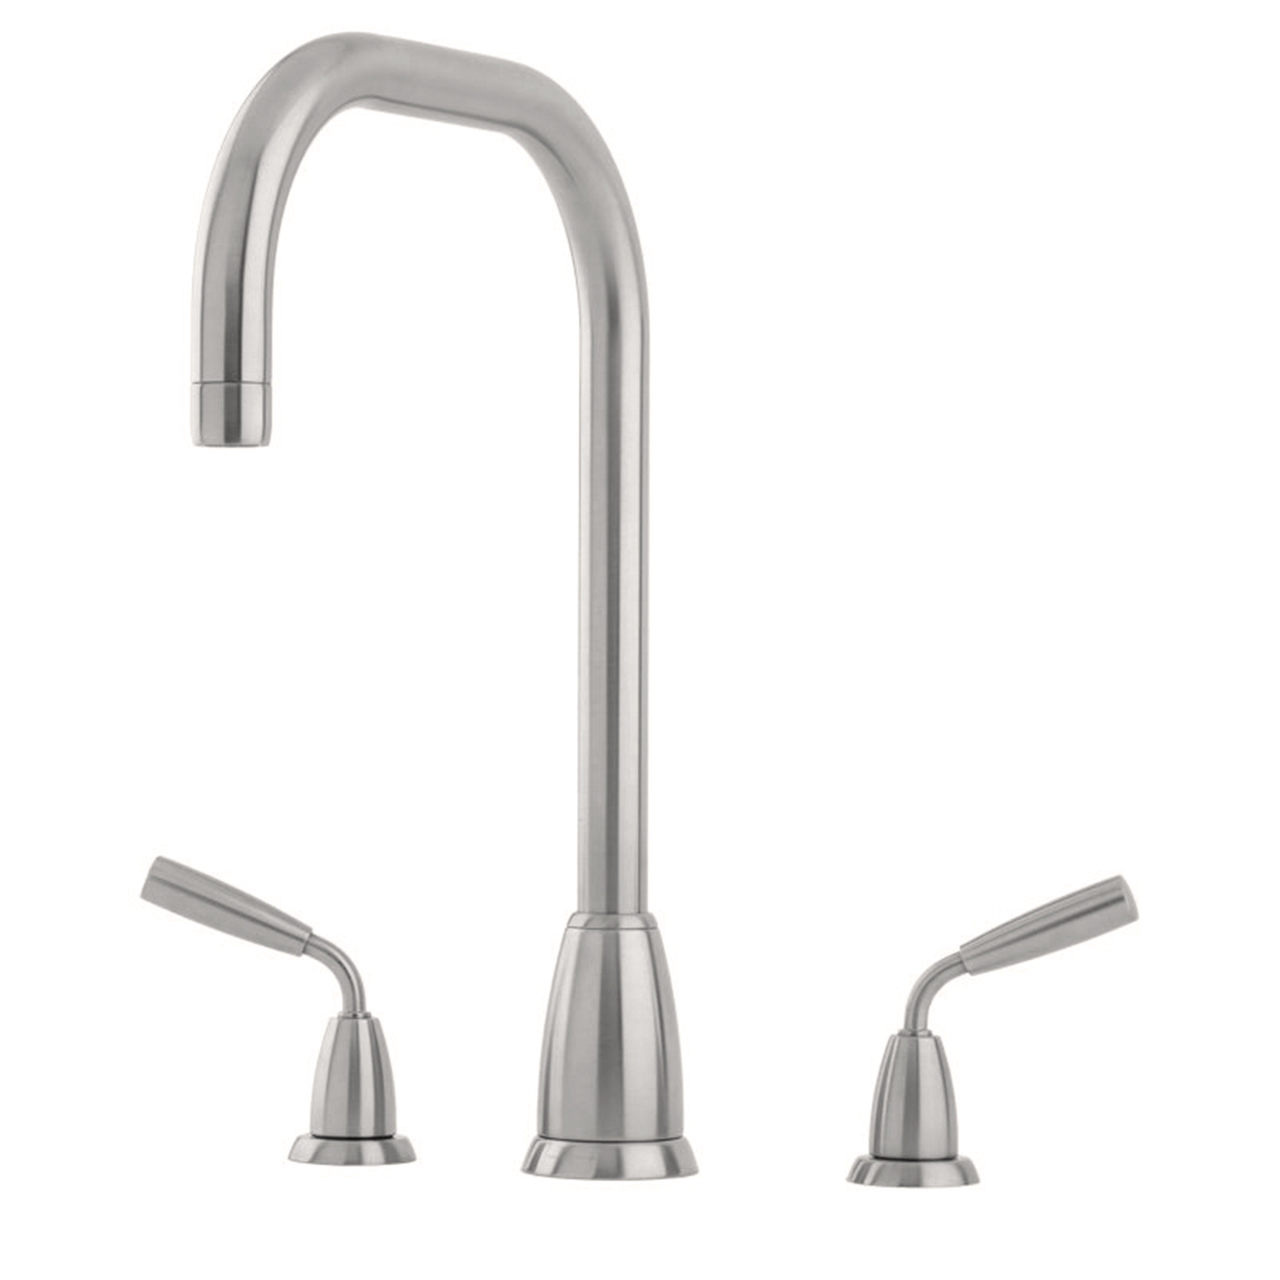 4873 Perrin & Rowe Titan Three Hole Sink Mixer Tap U Spout with ...